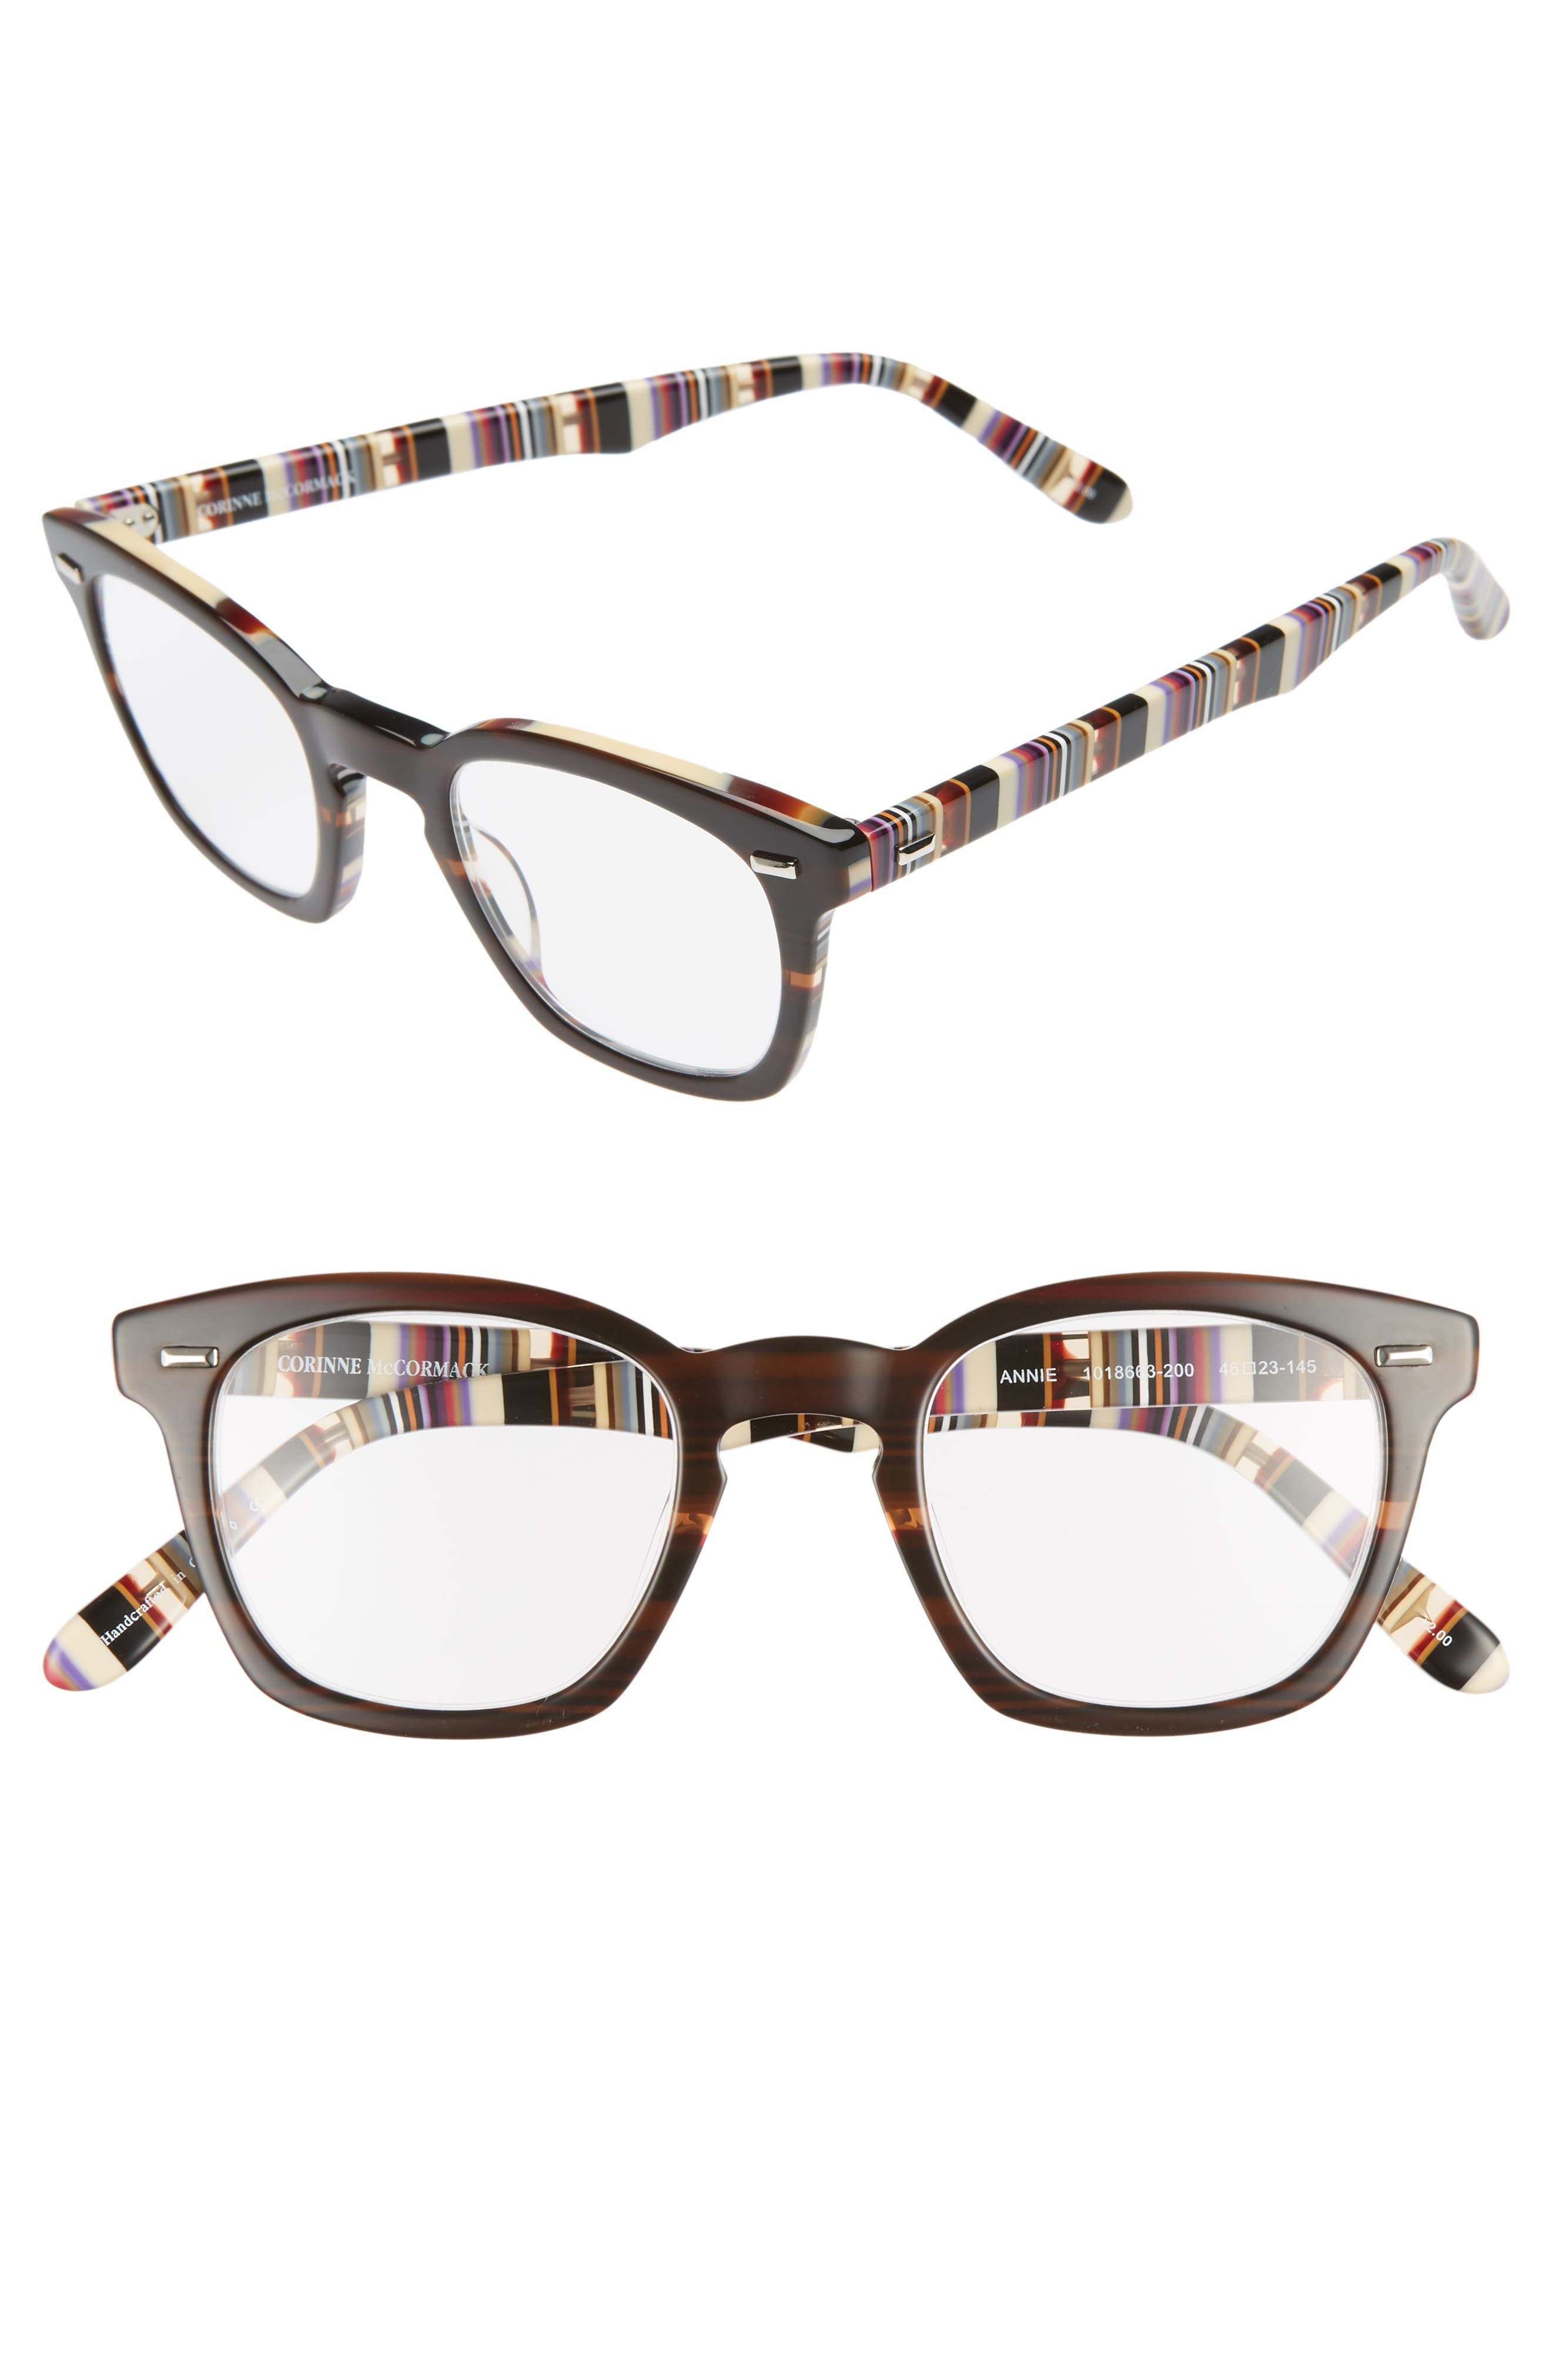 CORINNE MCCORMACK 'Annie' 46Mm Reading Glasses - Brown/ Stripe